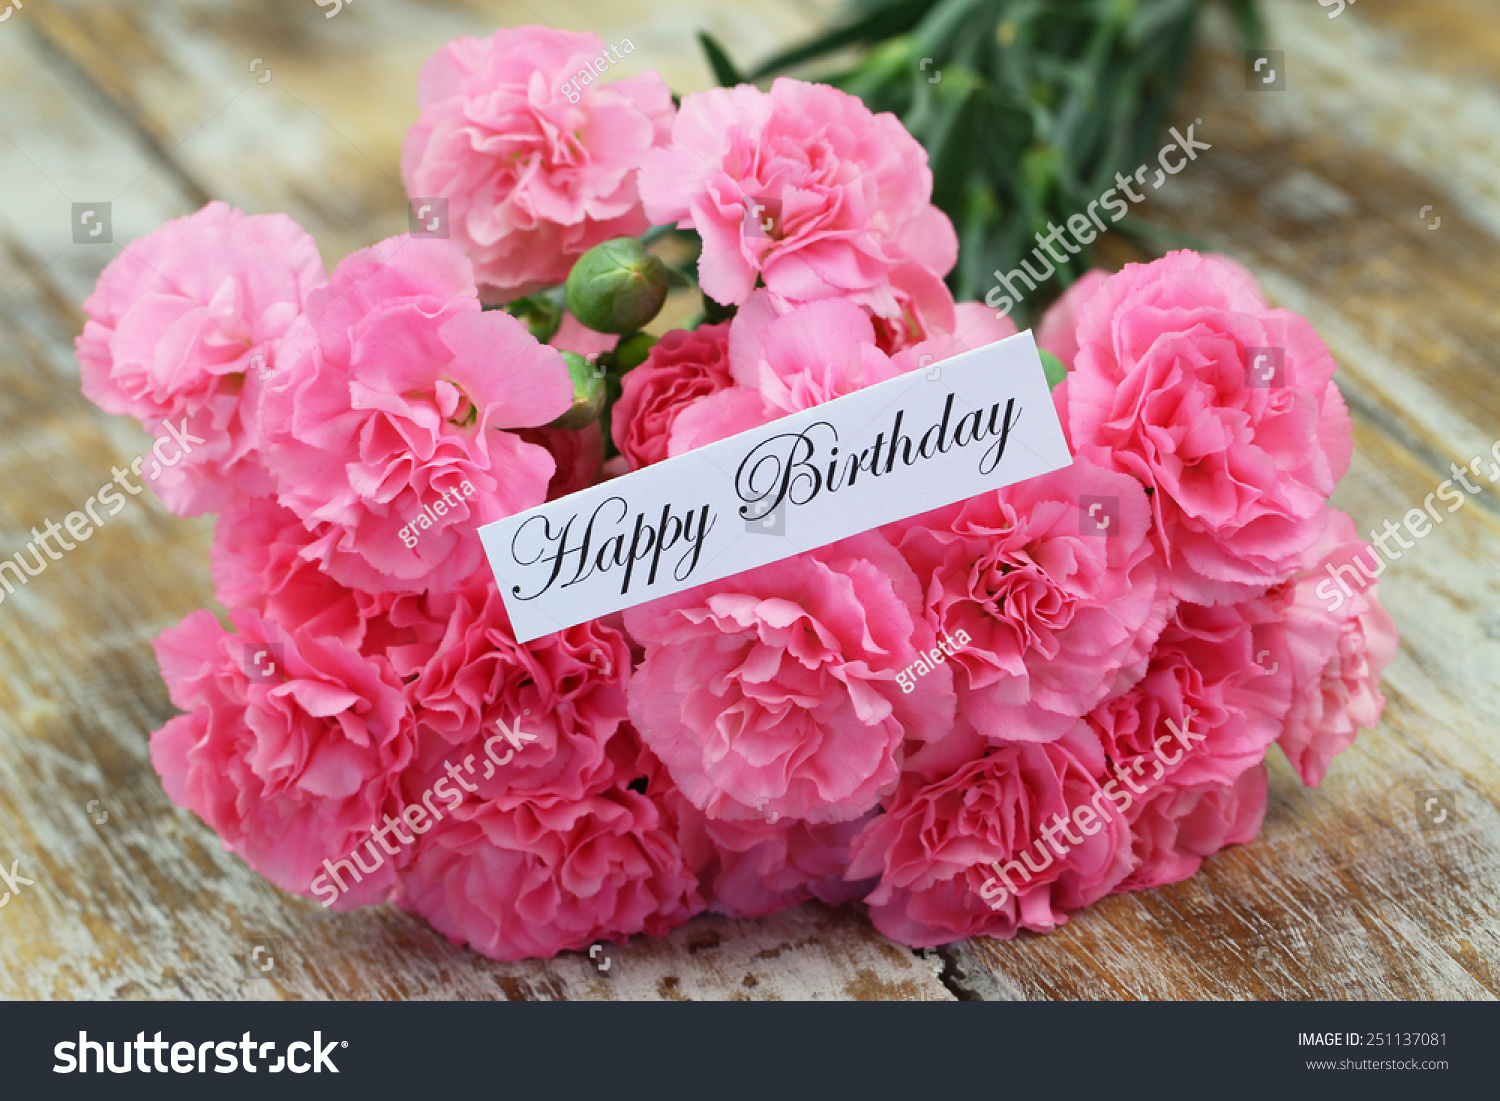 Happy Birthday Card Pink Carnation Flowers Stock Photo Edit Now